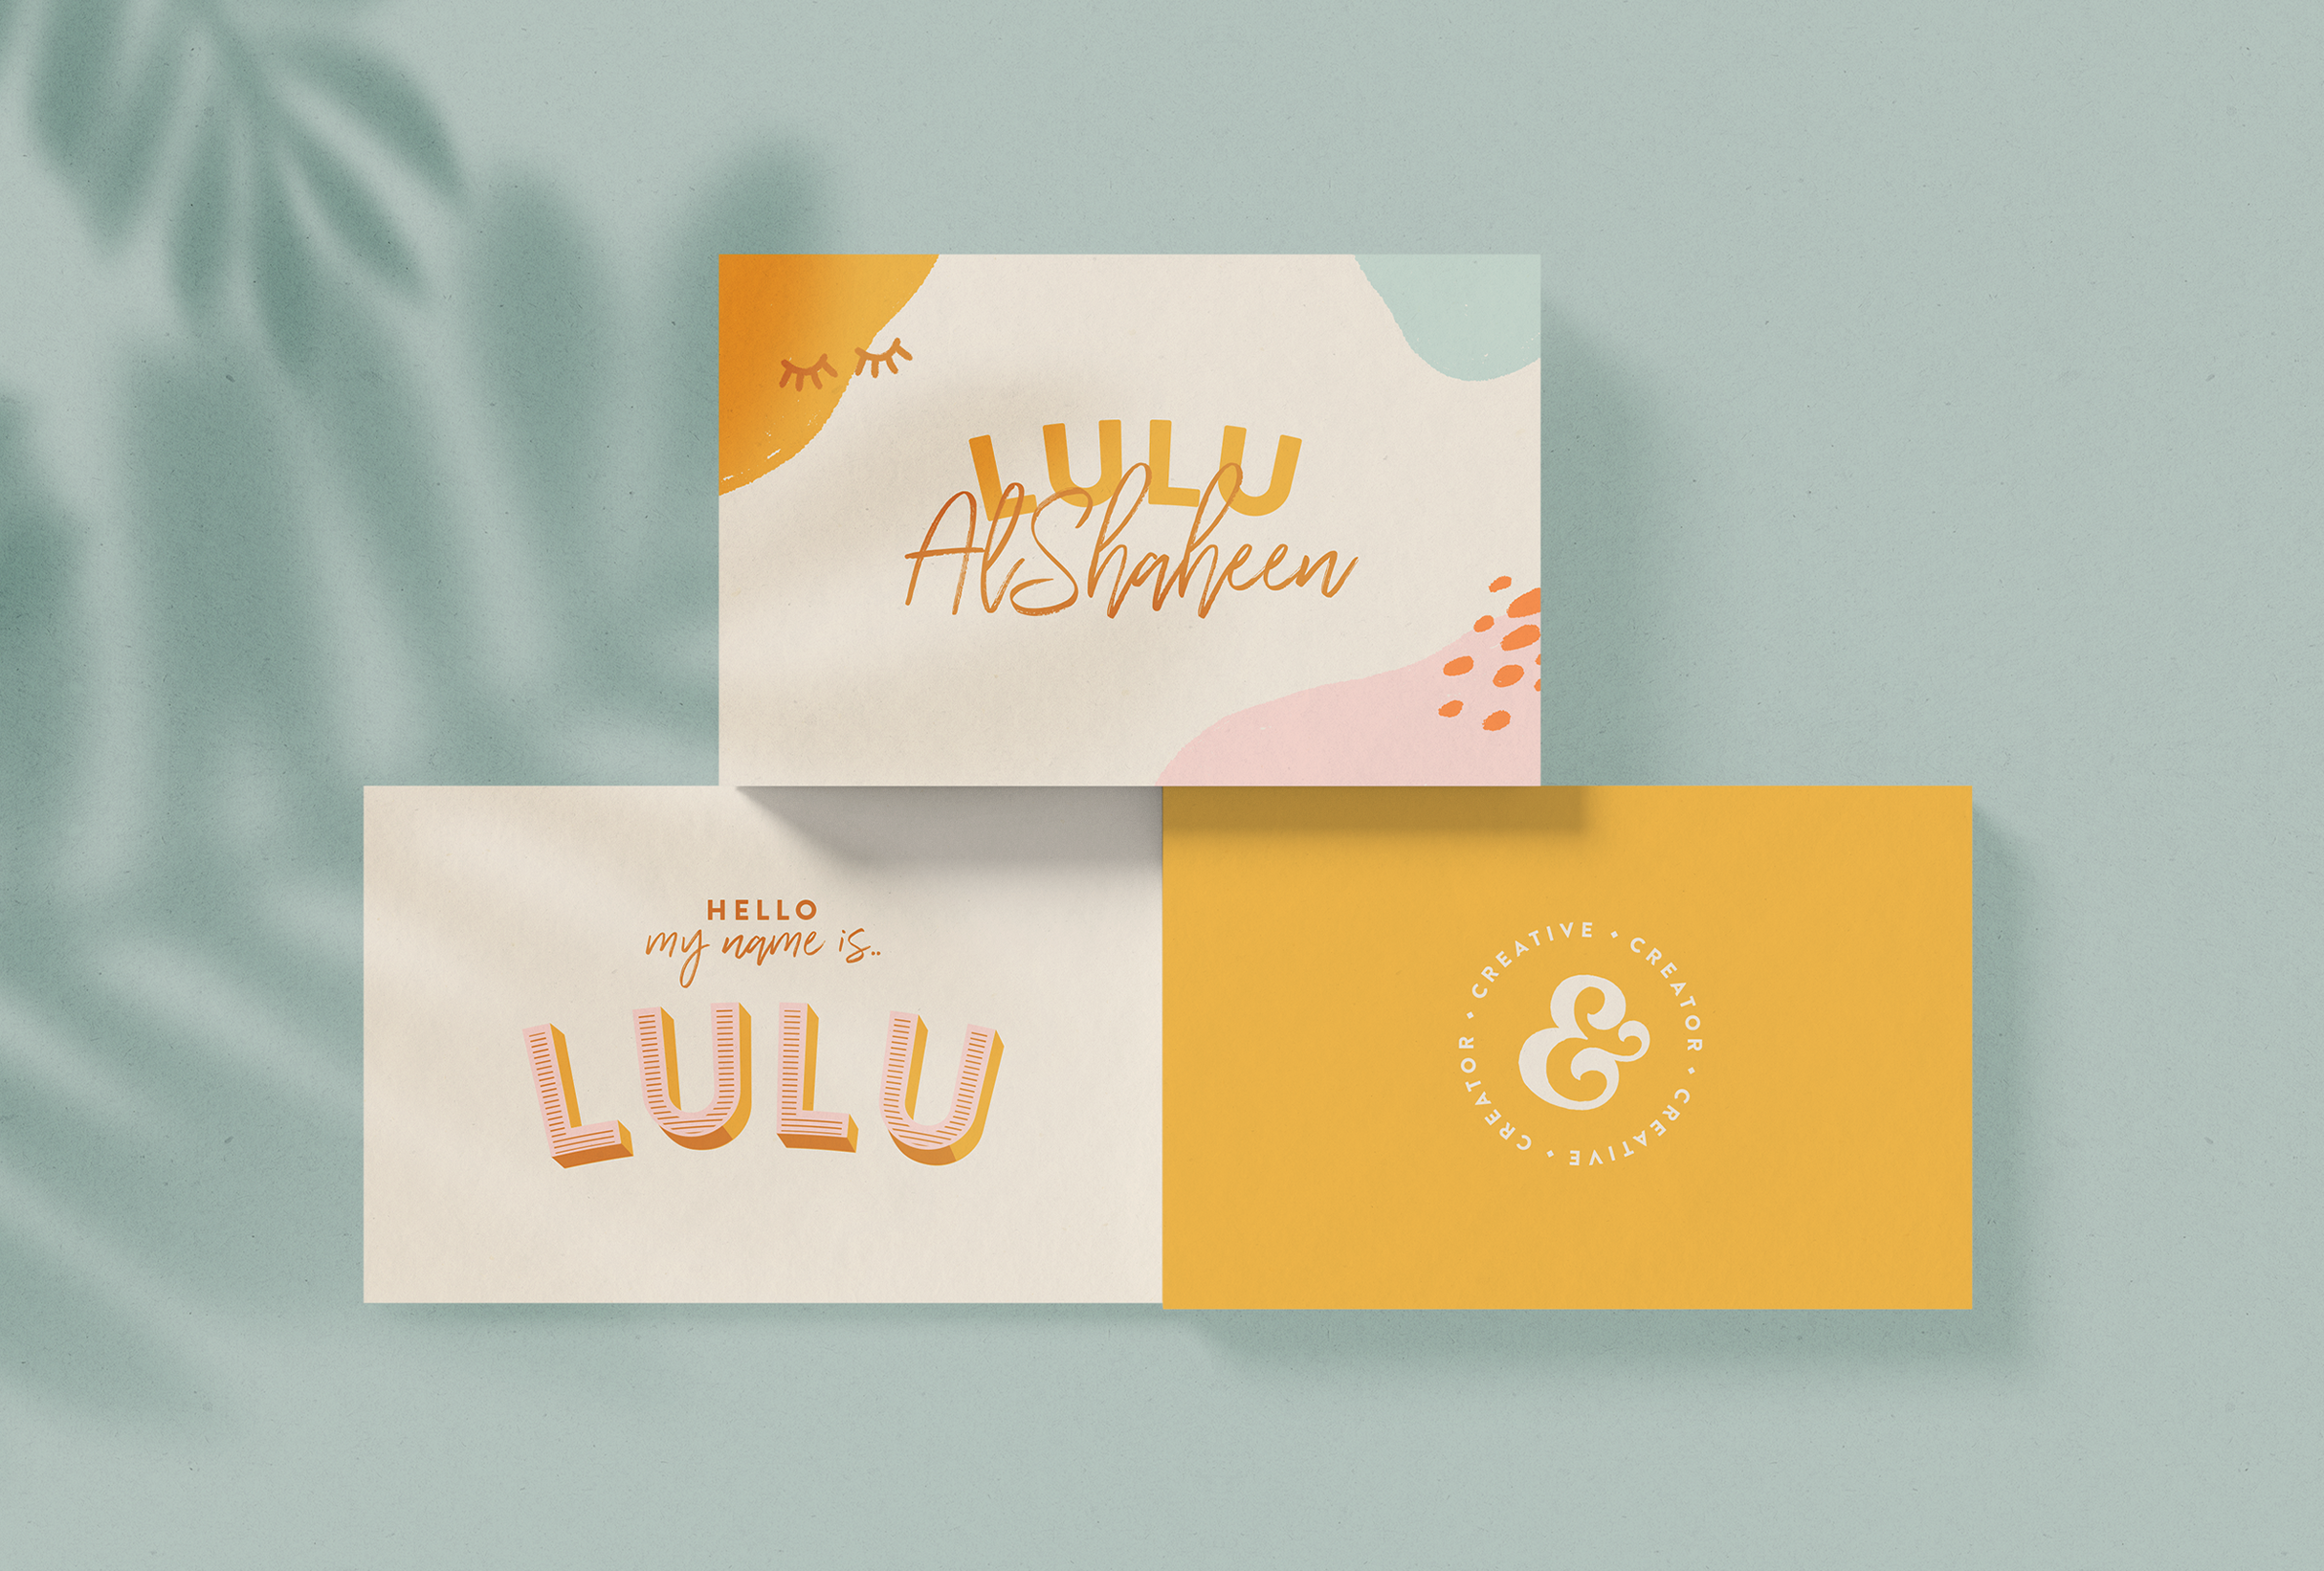 Business cards for Lulu AlShaheen, illustrator, brand designer & social media content creator - designed by Wiltshire-based graphic designer, Kaye Huett